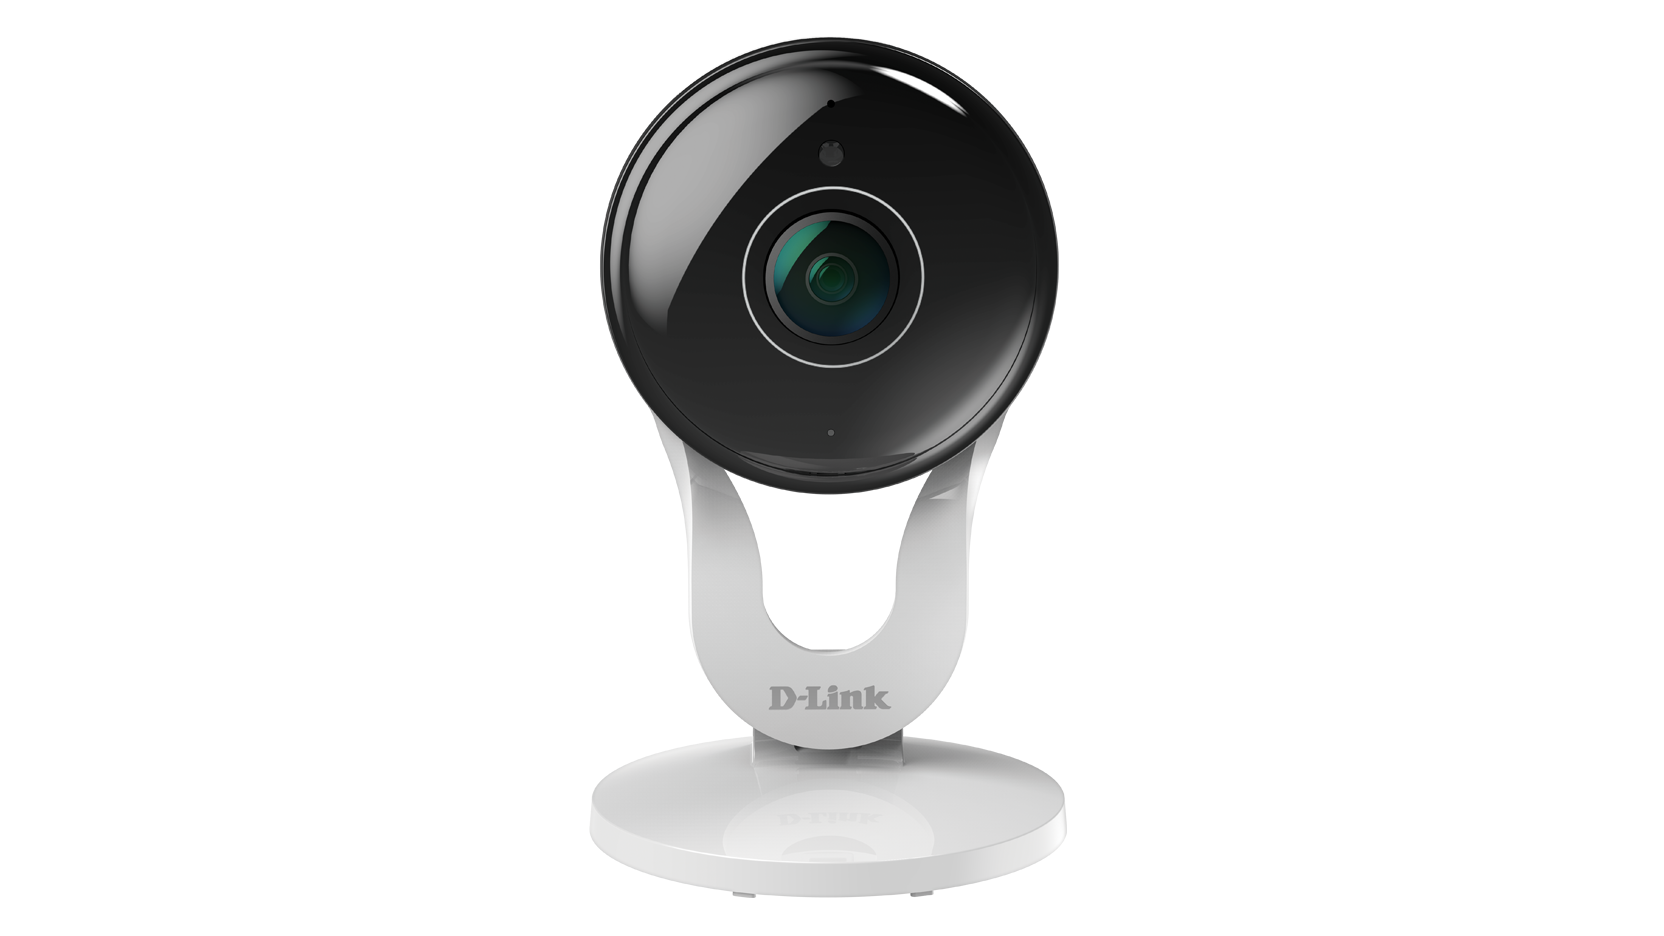 D-Link DCS-8300LH mydlink Full HD Wi-Fi Camera